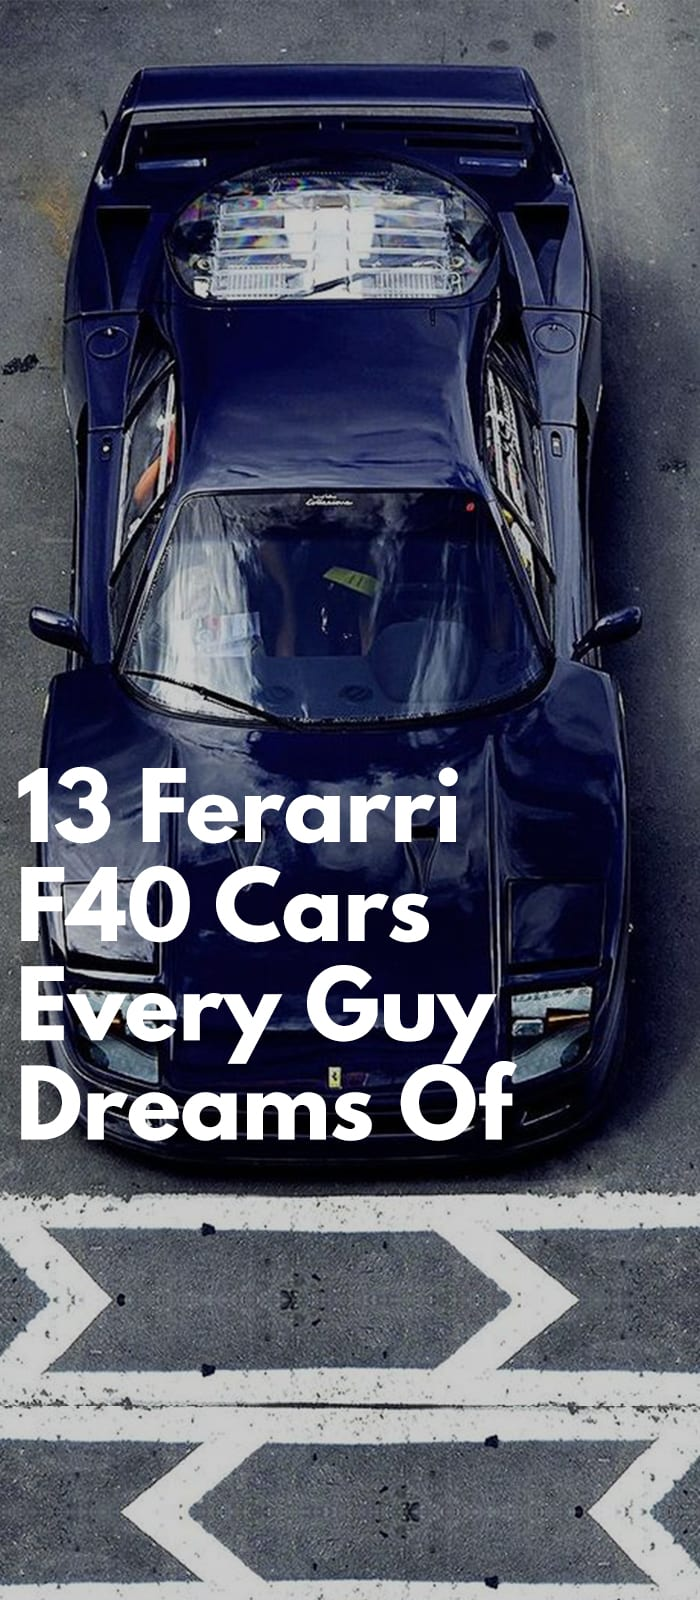 13 Ferarri F40 Cars Every Guy Dreams Of.